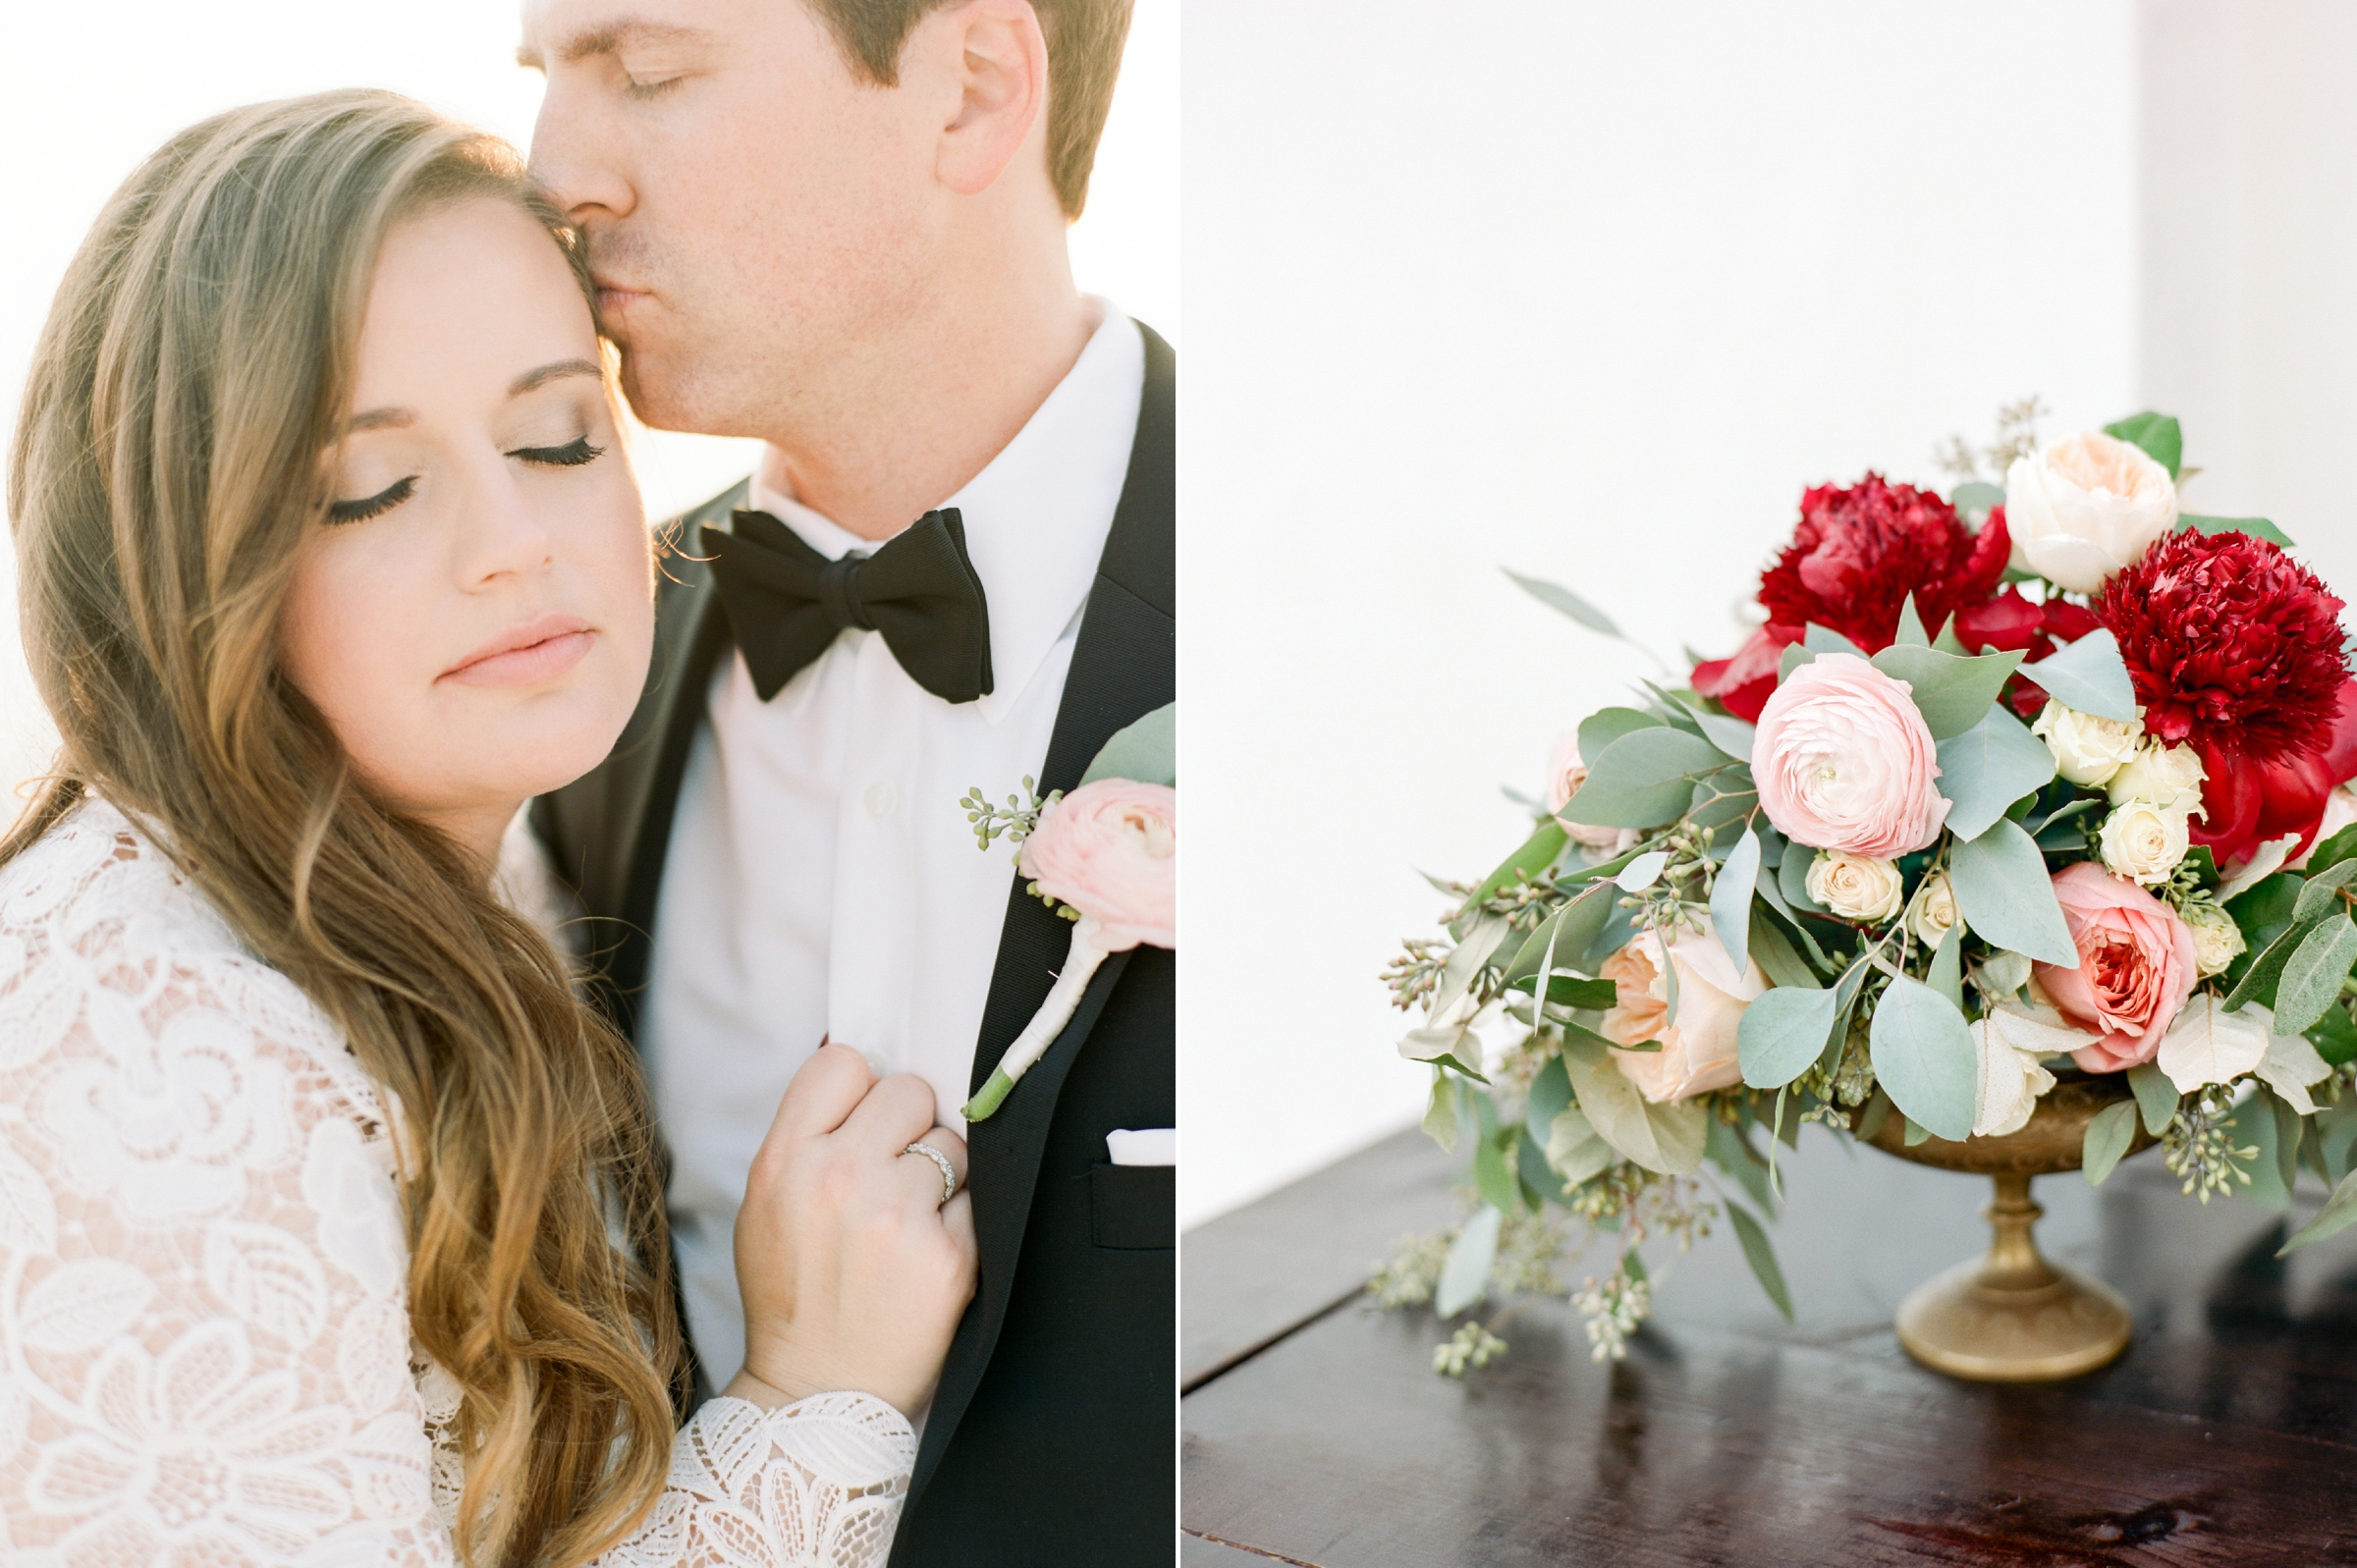 rosemary_beach_film_wedding_photographer_shannon_griffin_0001.jpg